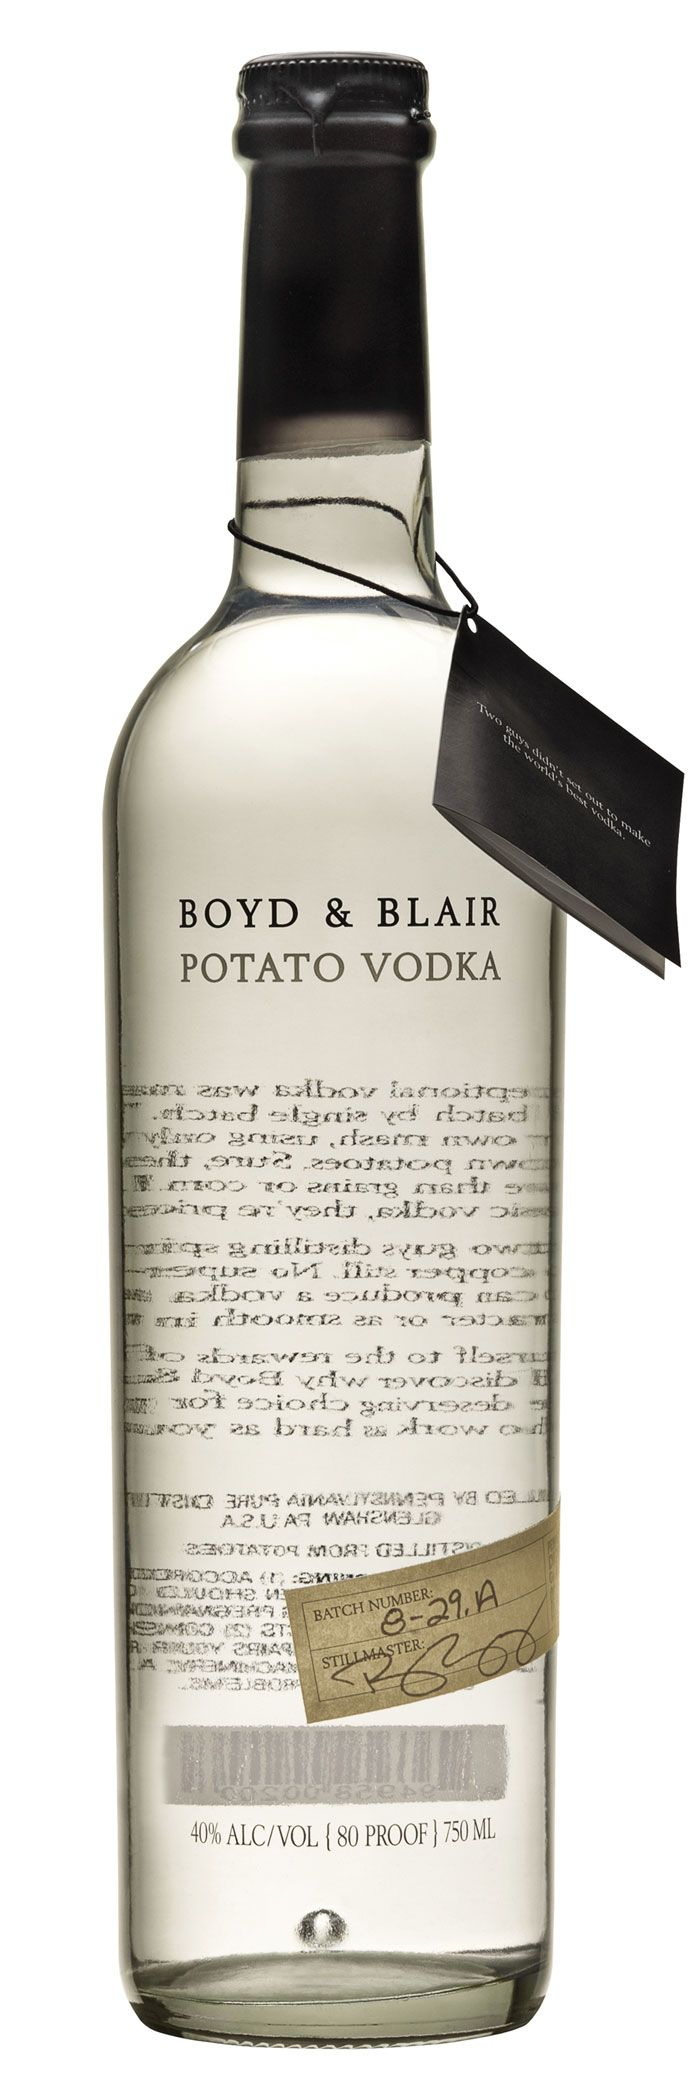 Boyd & Blair Potato Vodka.  Great gift idea.  Screw that - get it for yourself!